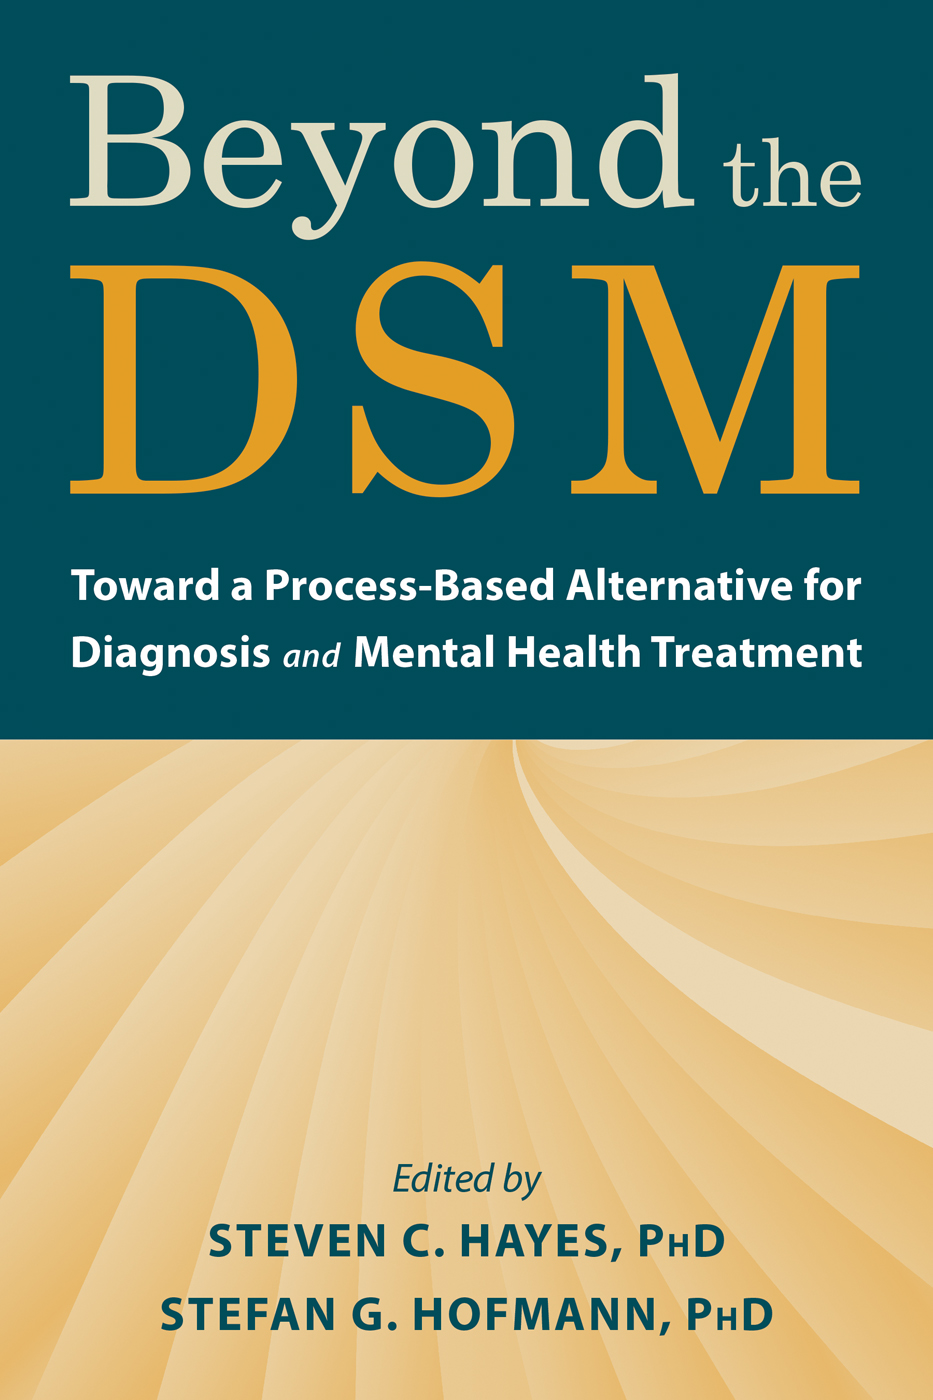 Beyond the DSM: Toward a Process-Based Alternative for Diagnosis and Mental Health Treatment